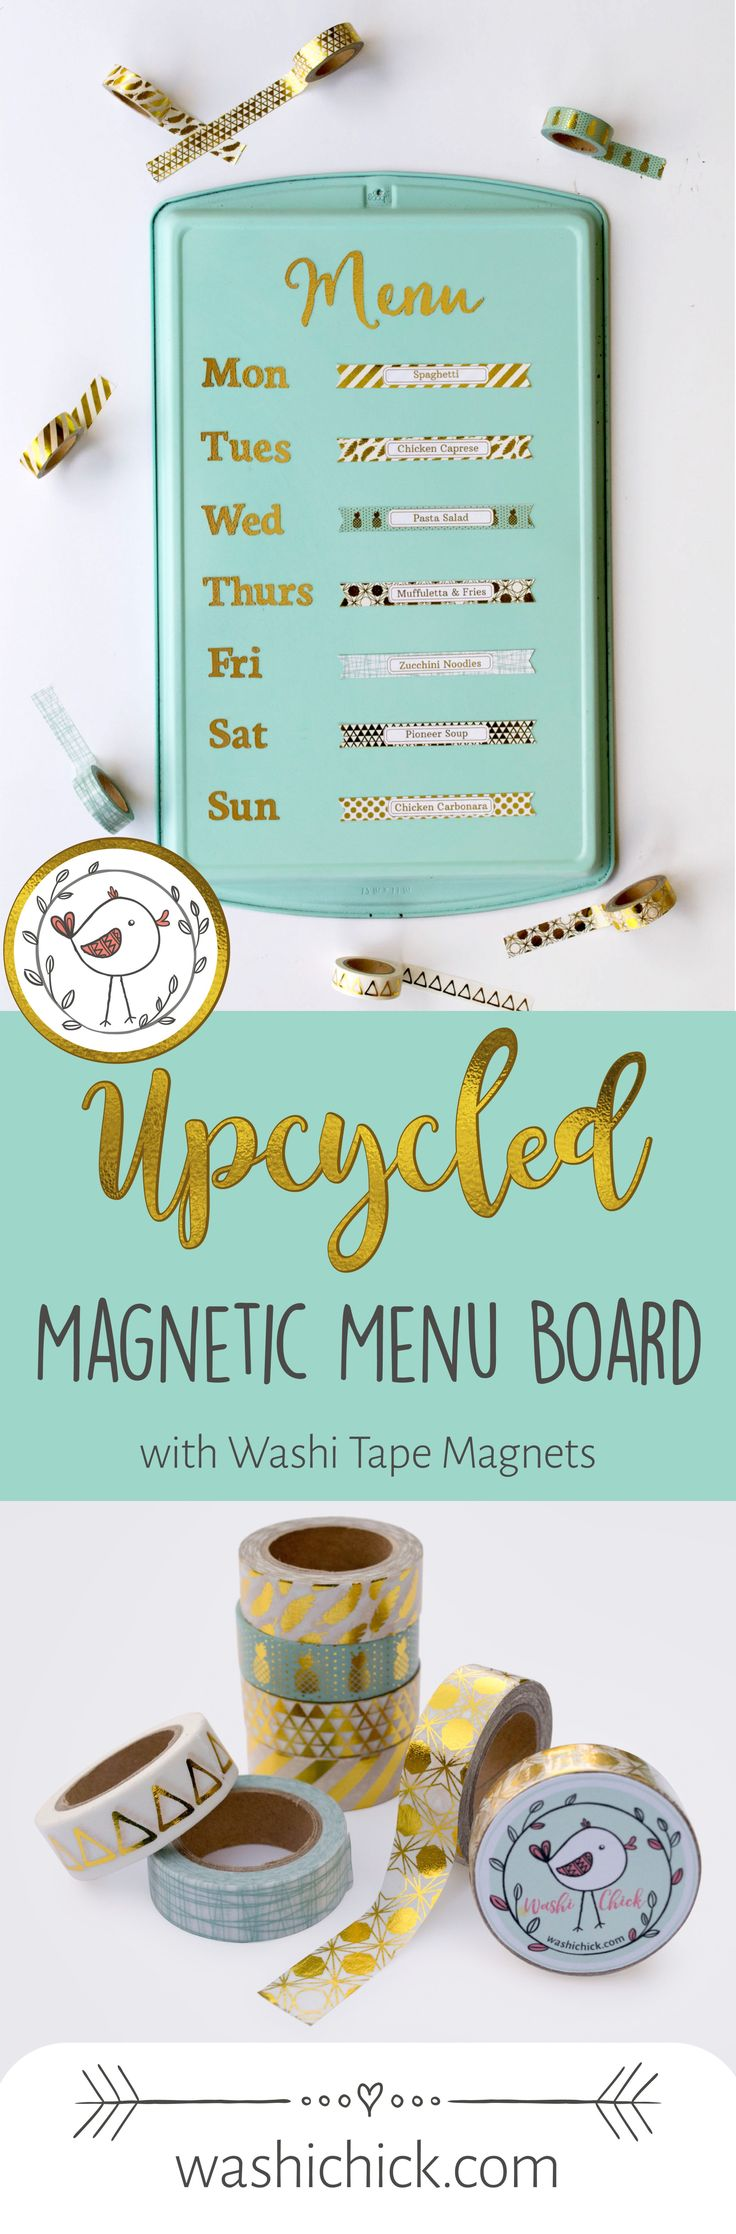 Diy Crafts Upcycled Diy Magnetic Menu Board With Washi Tape Magnets Diyall Net Home Of Diy Craft Ideas Inspiration Diy Projects Craft Ideas How To S For Home